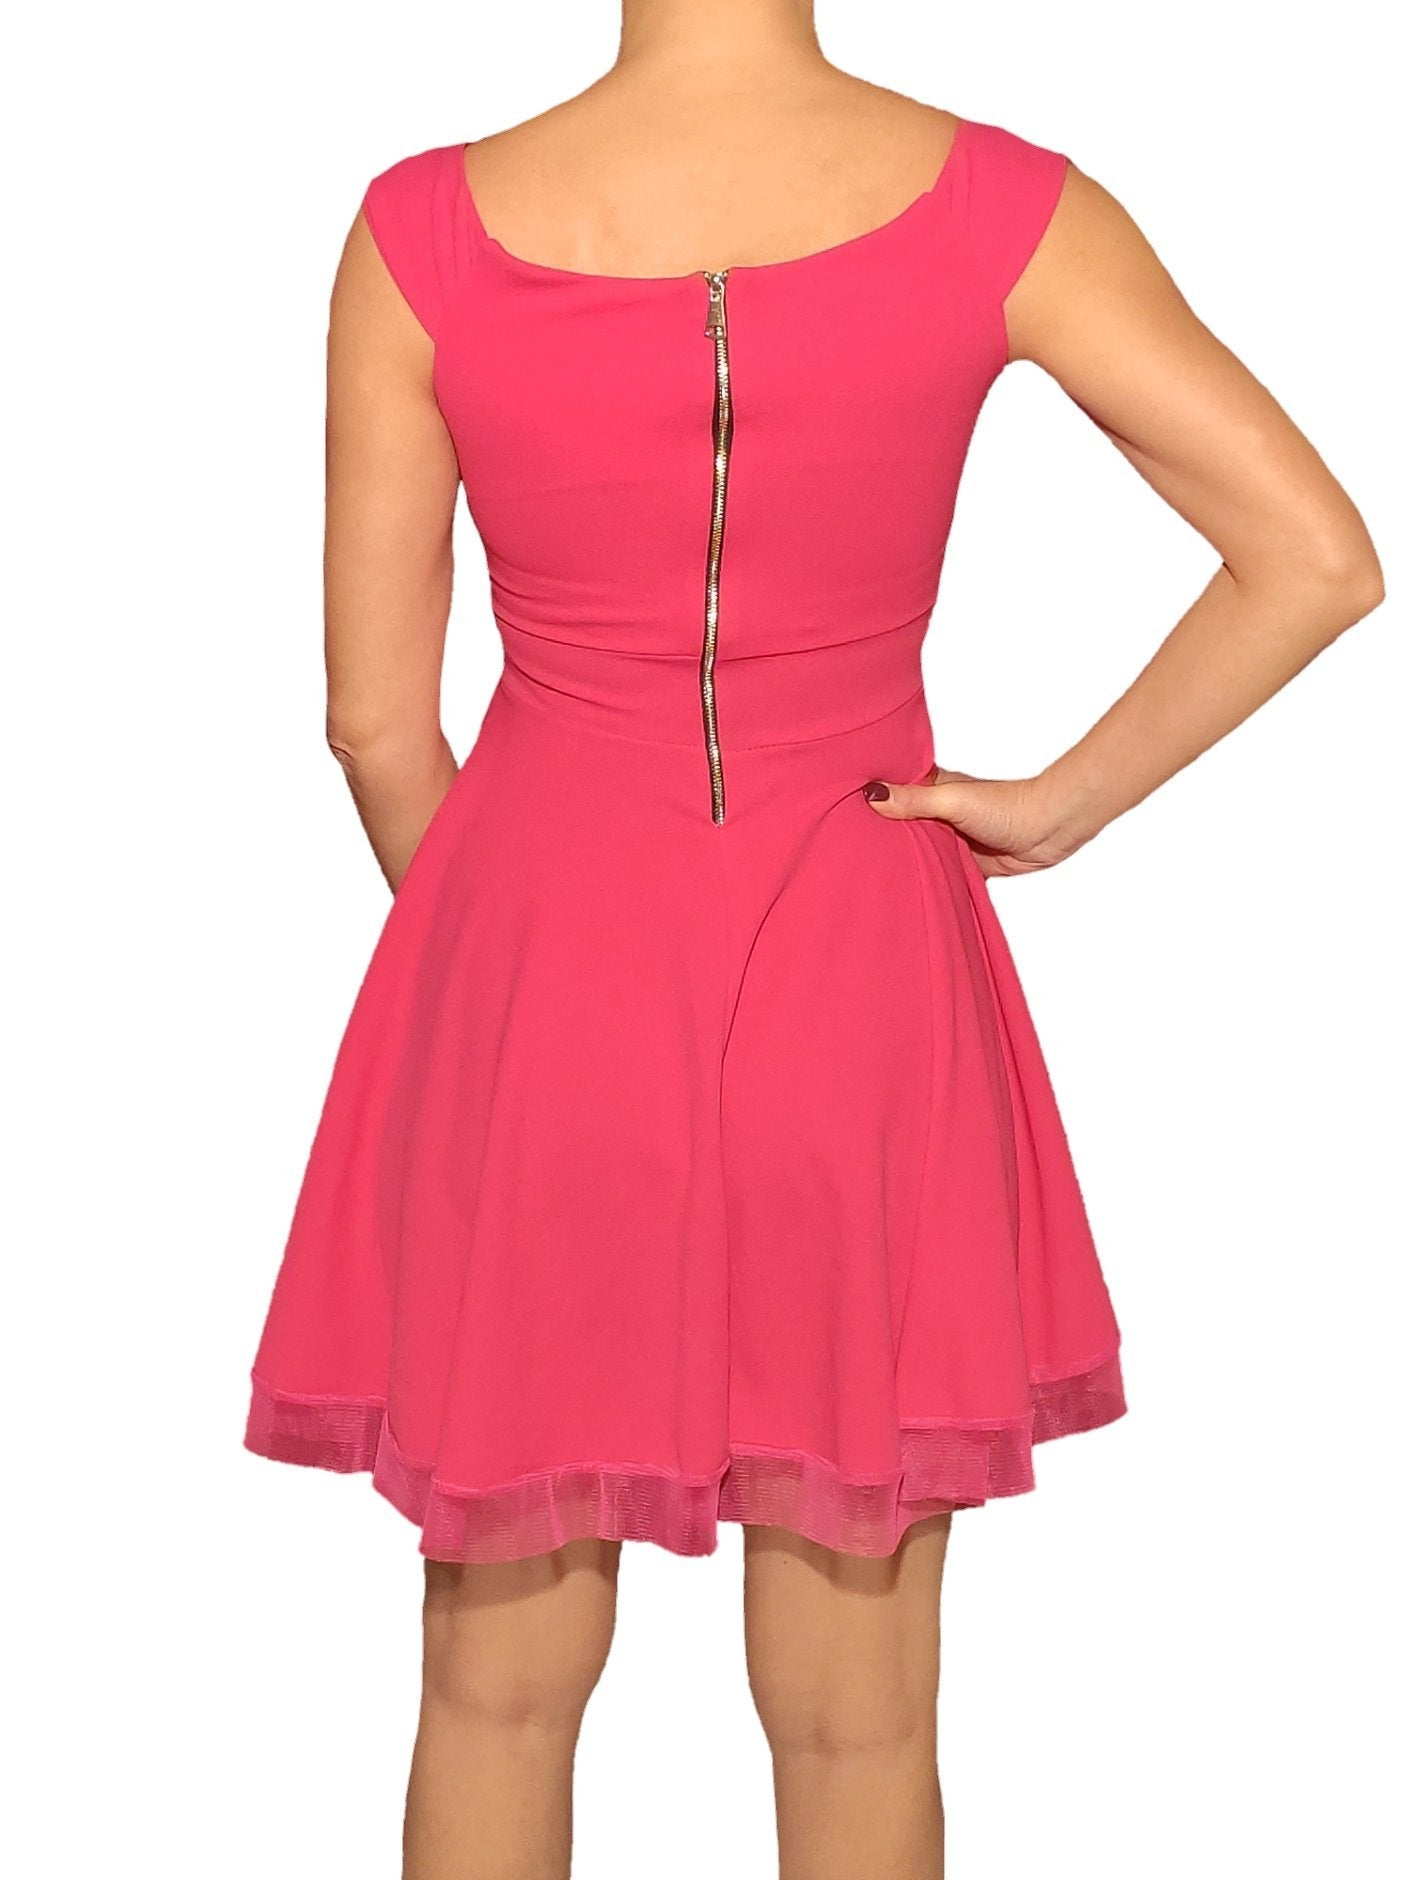 a-woman-wears-a-pink-dress-with-tul-back-side